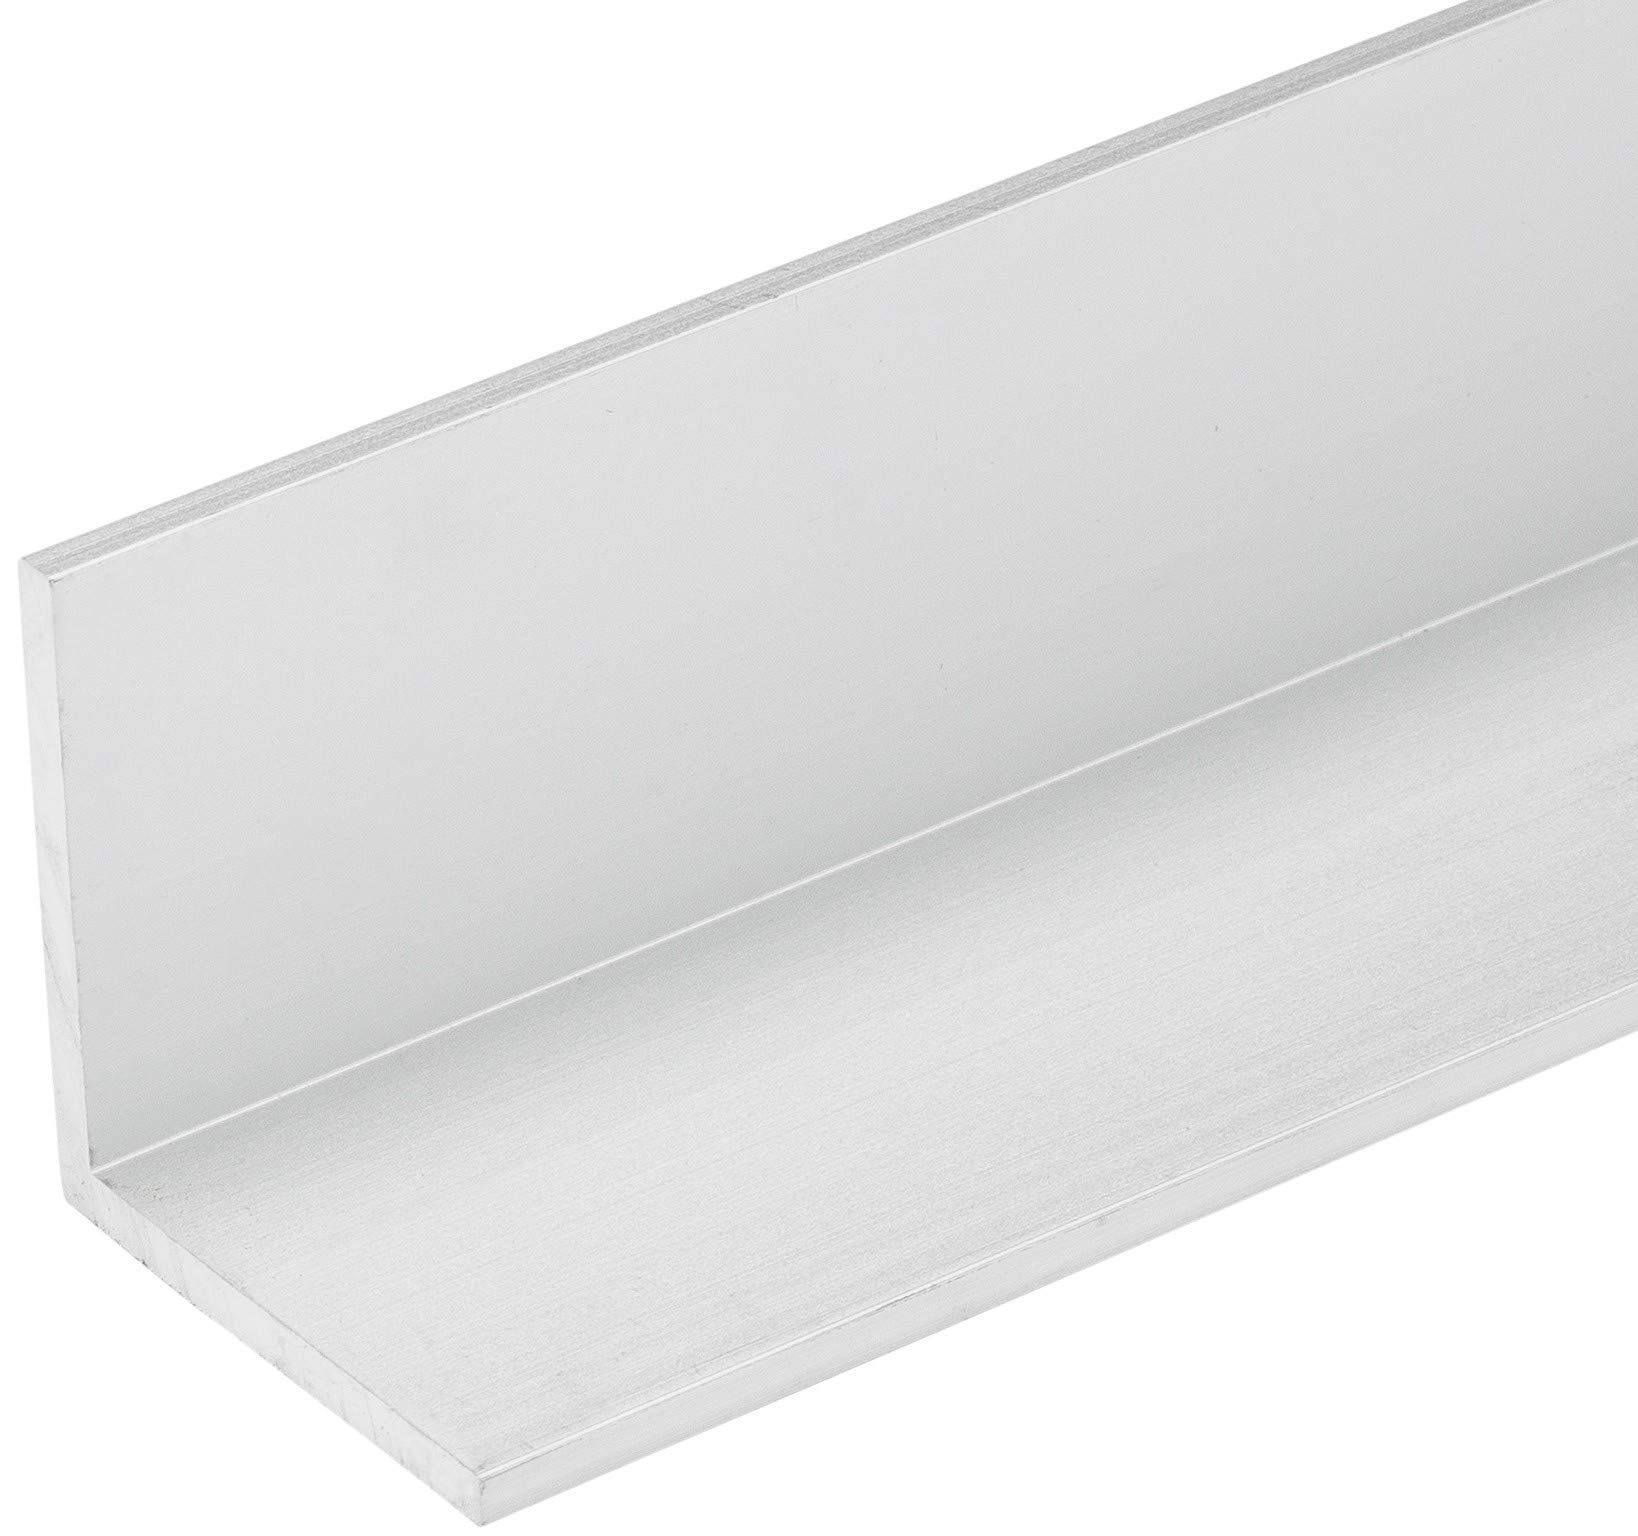 48'L x 1 1/4''W x 1/8''T Long Clear Anodized Aluminum Angle (3 Pack) Made in USA by Randall Manufacturing Co., Inc